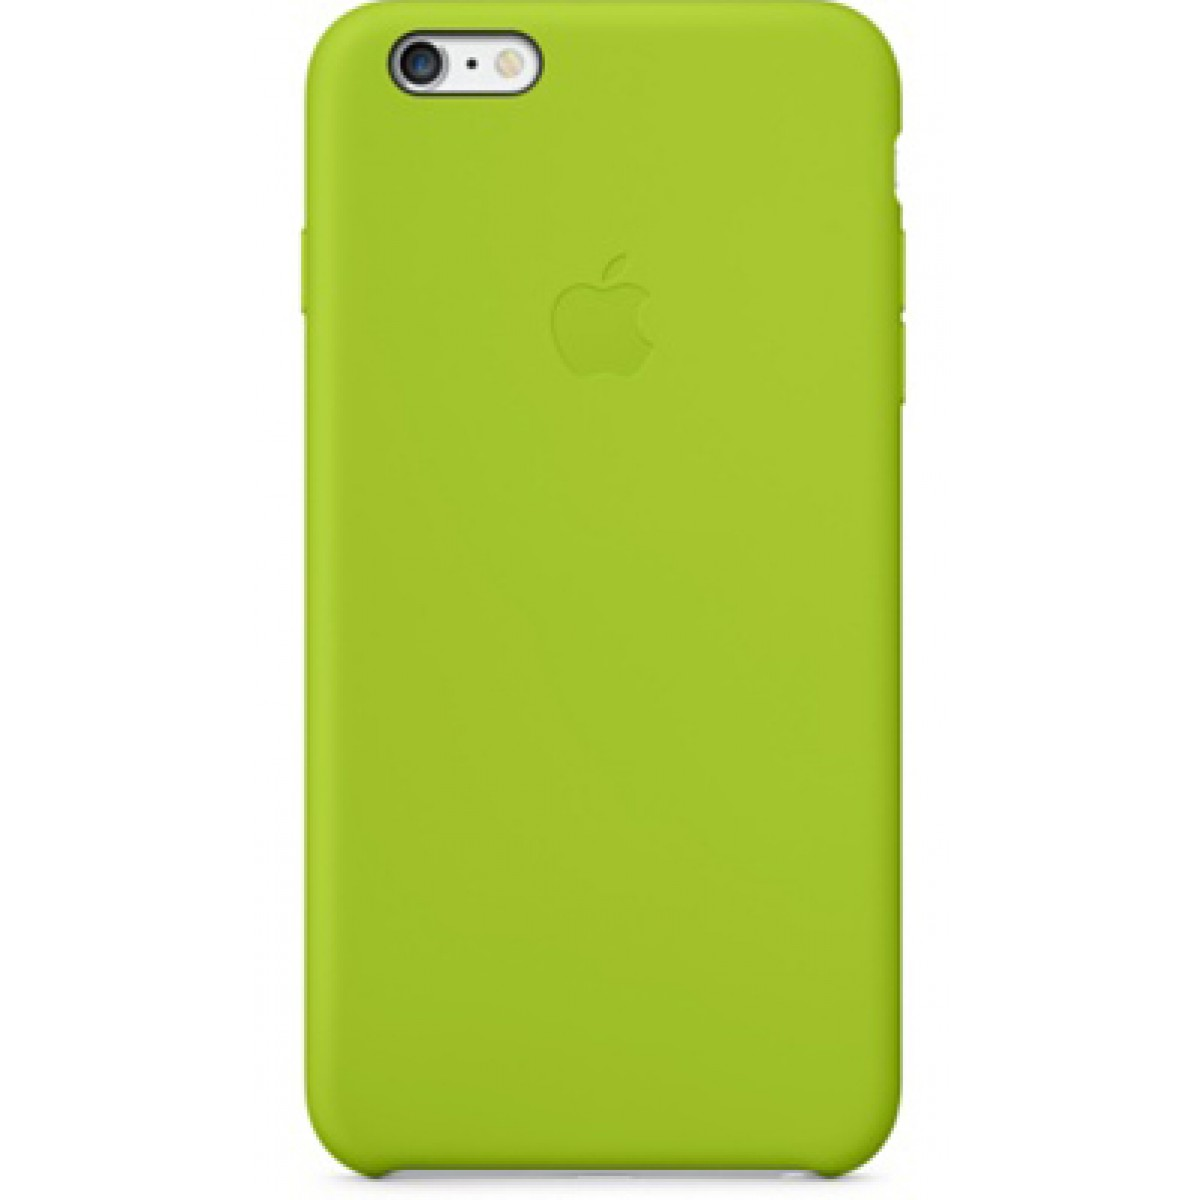 iphone 6 silicone case green mgxu2. Black Bedroom Furniture Sets. Home Design Ideas